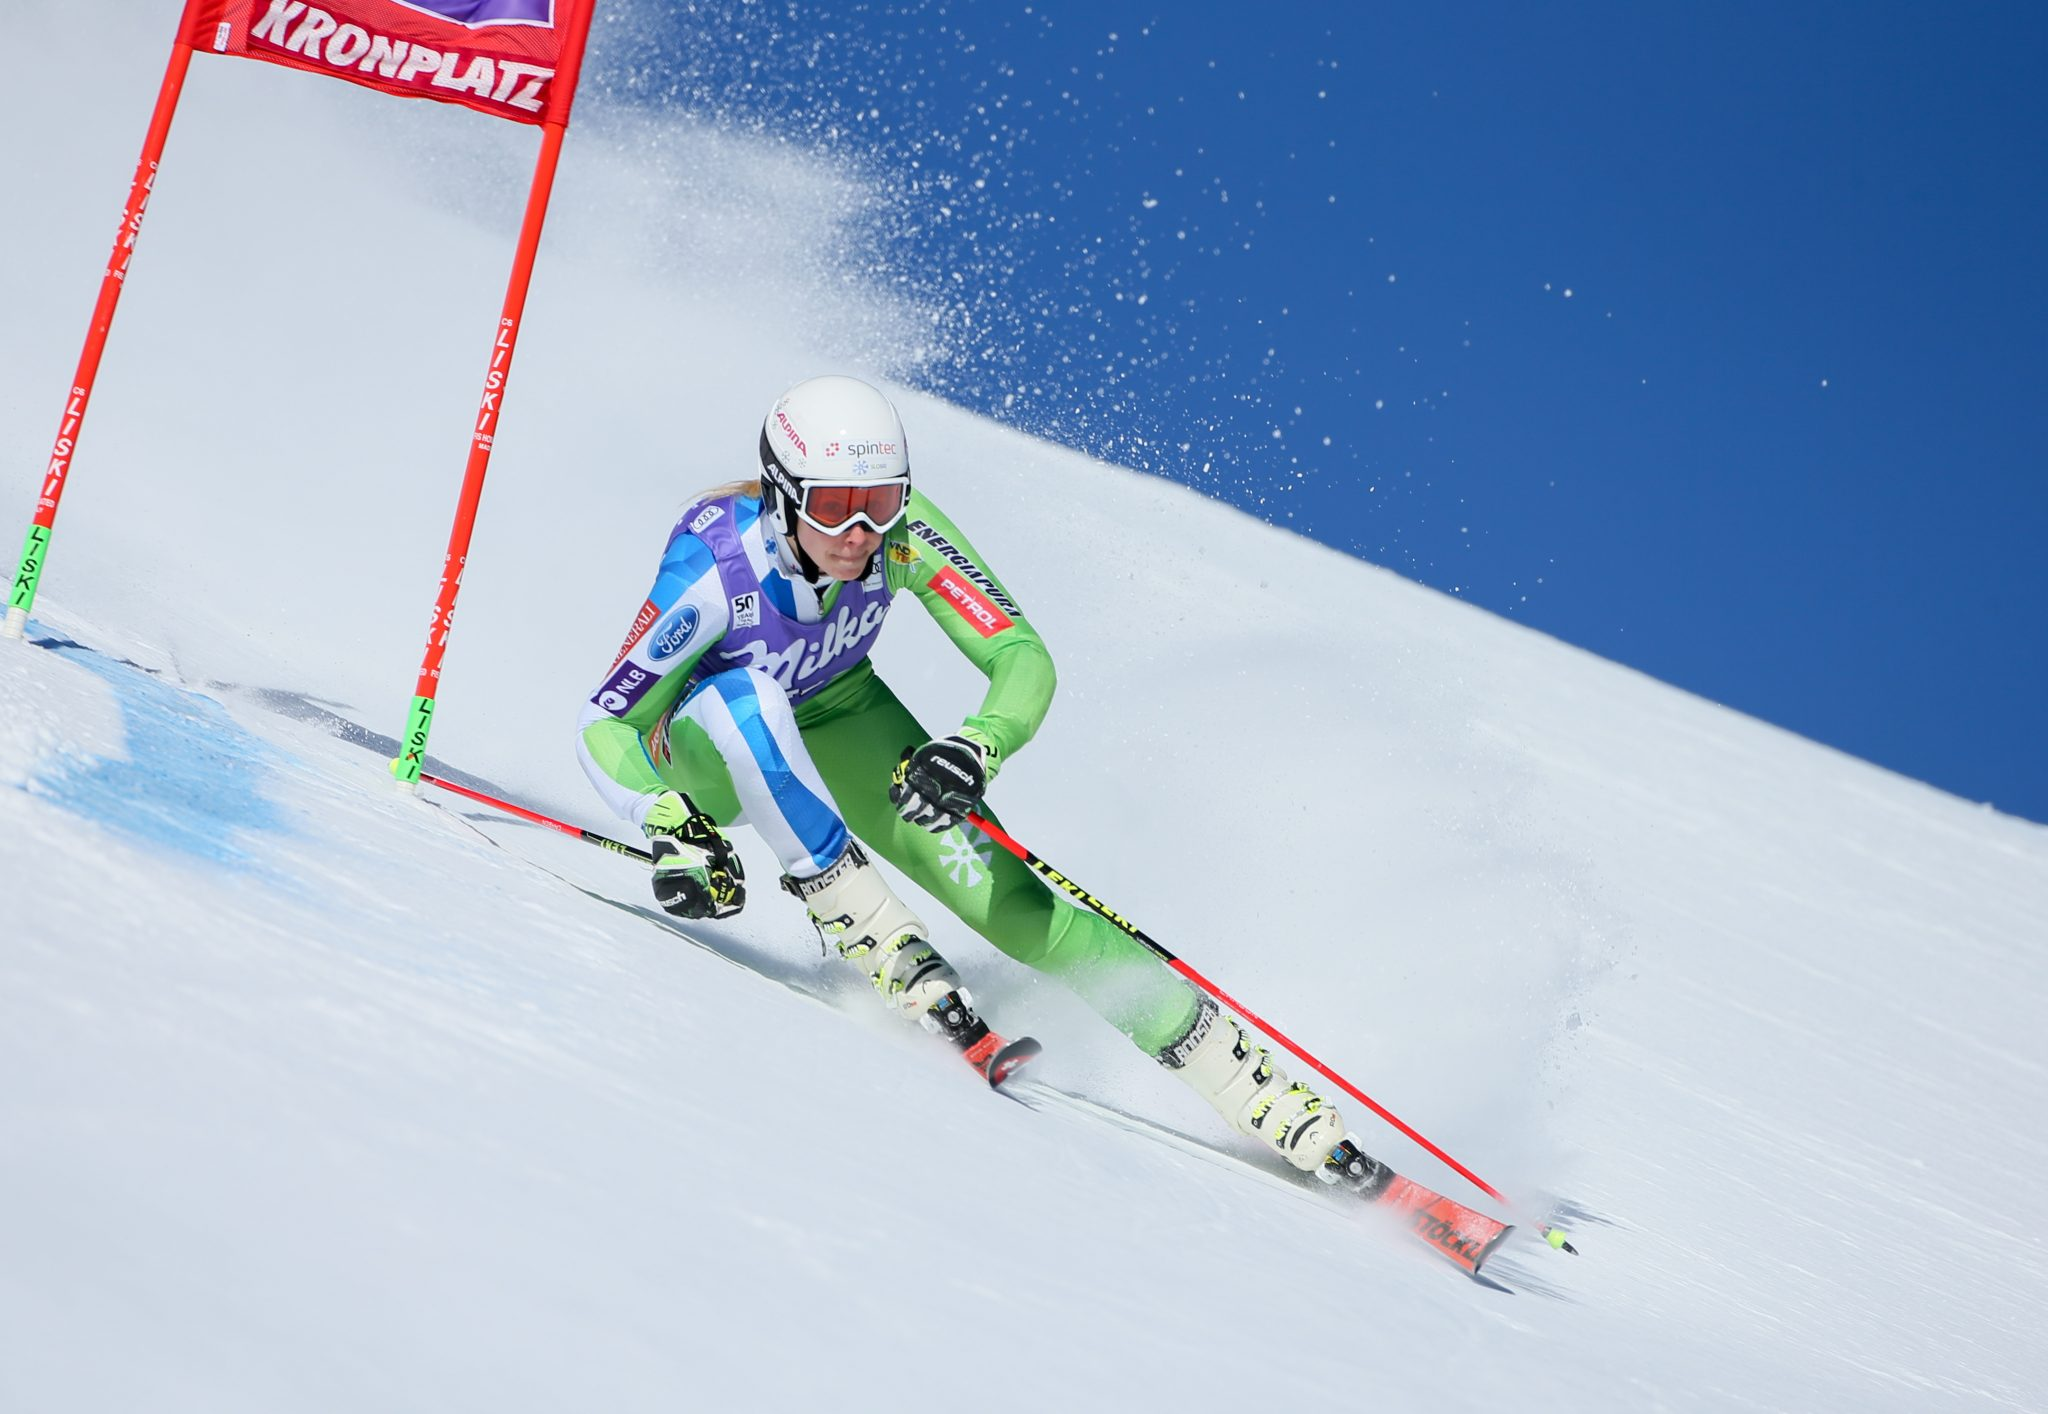 KRONPLATZ,ITALY,24.JAN.17 - ALPINE SKIING - FIS World Cup, Giant Slalom, Ladies. Image Shows Ana Bucik (SLO). Keywords: Stoeckli Photo: GEPA Pictures/ Mario Kneisl